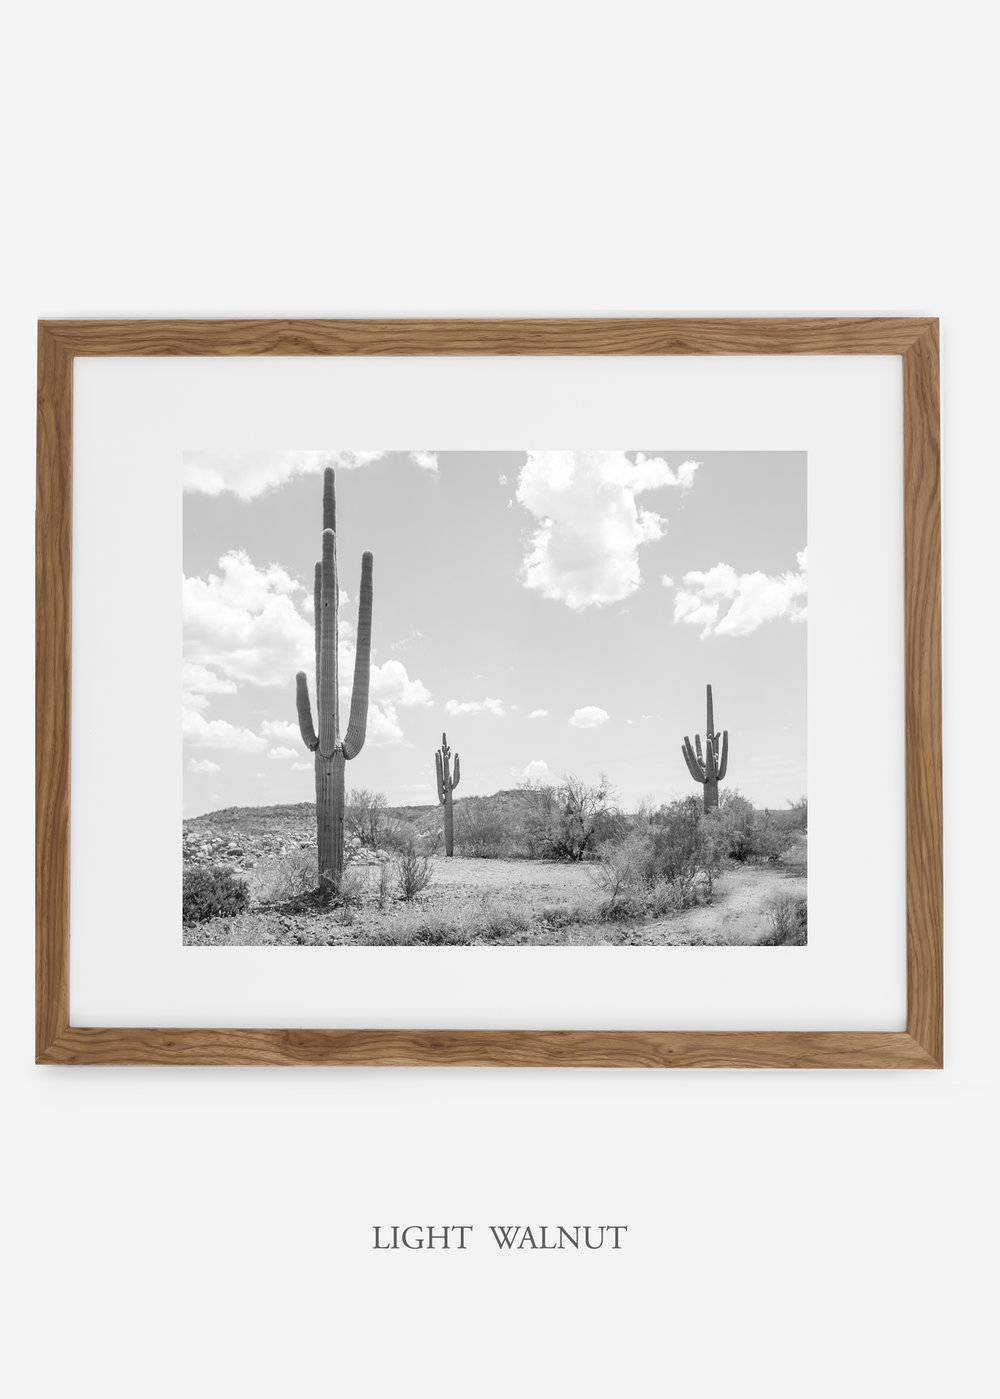 wildercalifornia_lightwalnutframe_threesaguaro_cactus_art_interiordesign.jpg